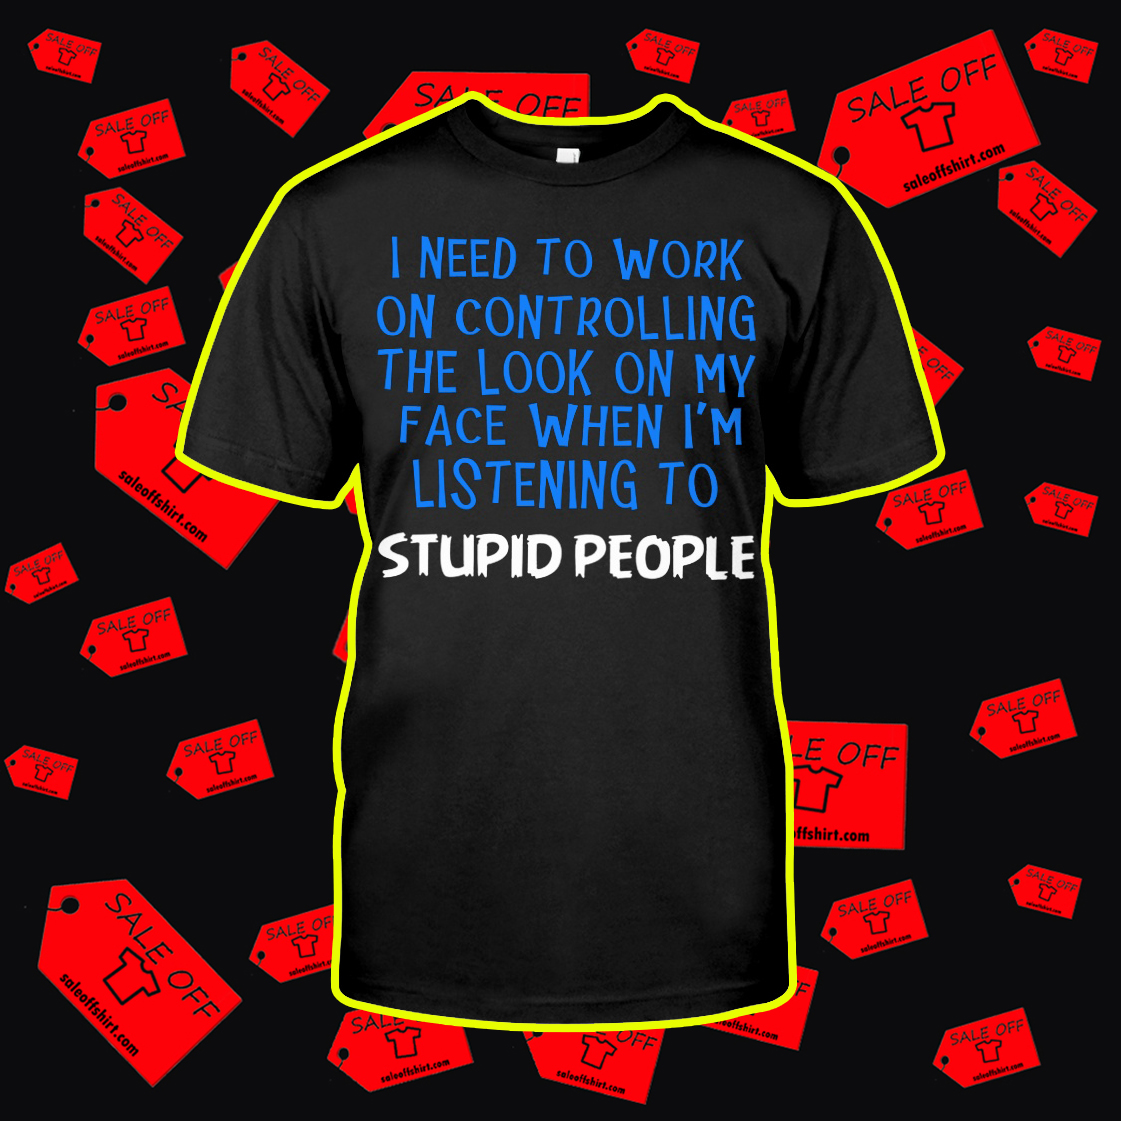 I Need To Work On Controlling The Look On My Face When I'm Listening To Stupid People shirt